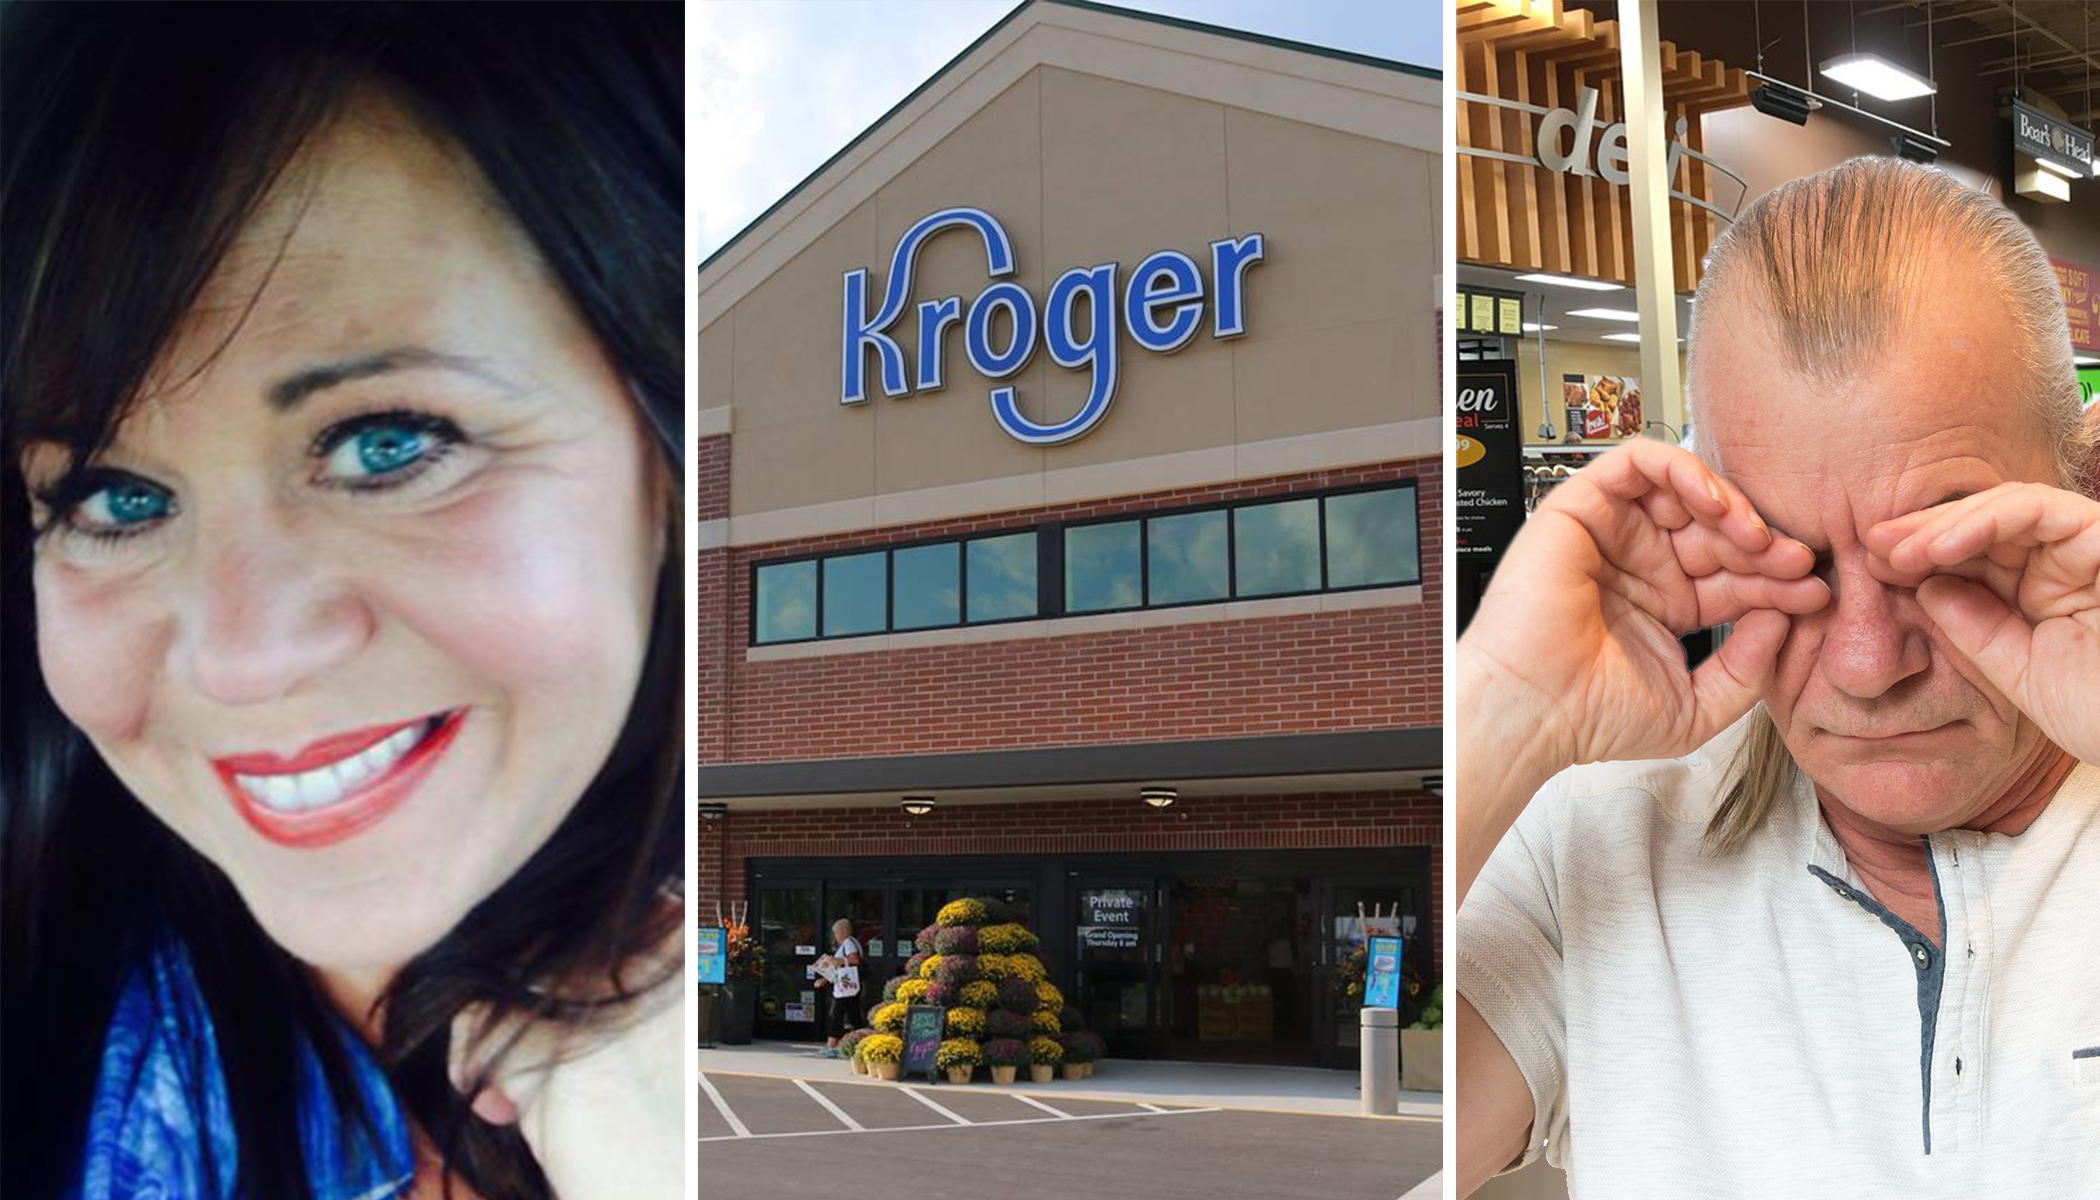 Woman Helps an Old Man Who Had an Accident in Kroger, Restores His Faith in Humanity